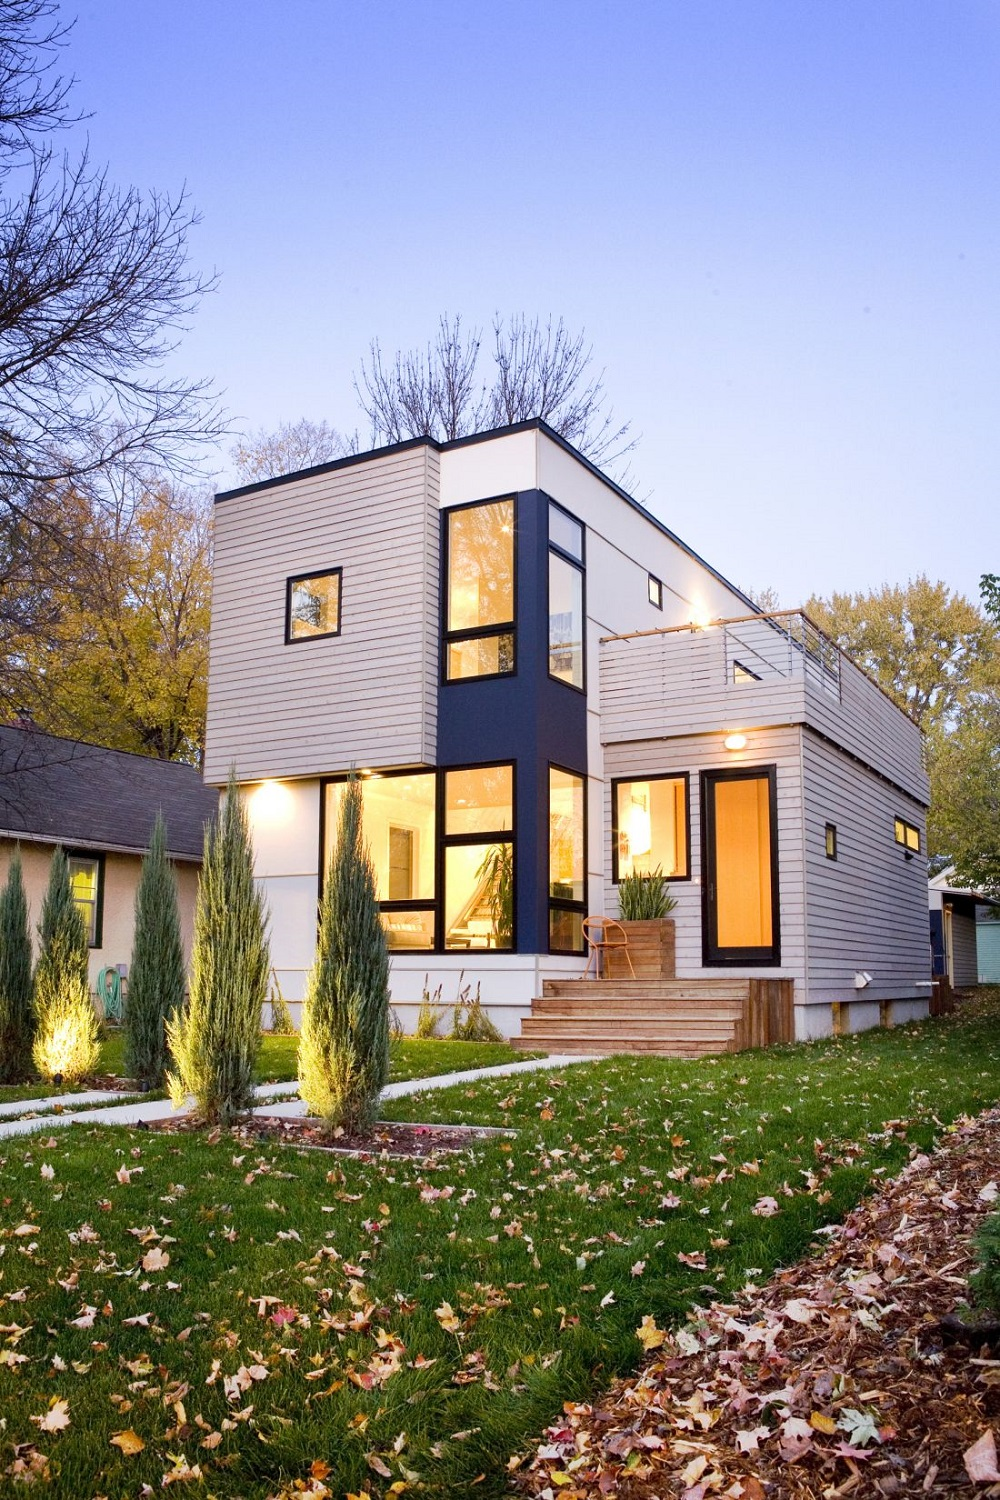 Step 4 the pros and cons of buying prefabricated houses